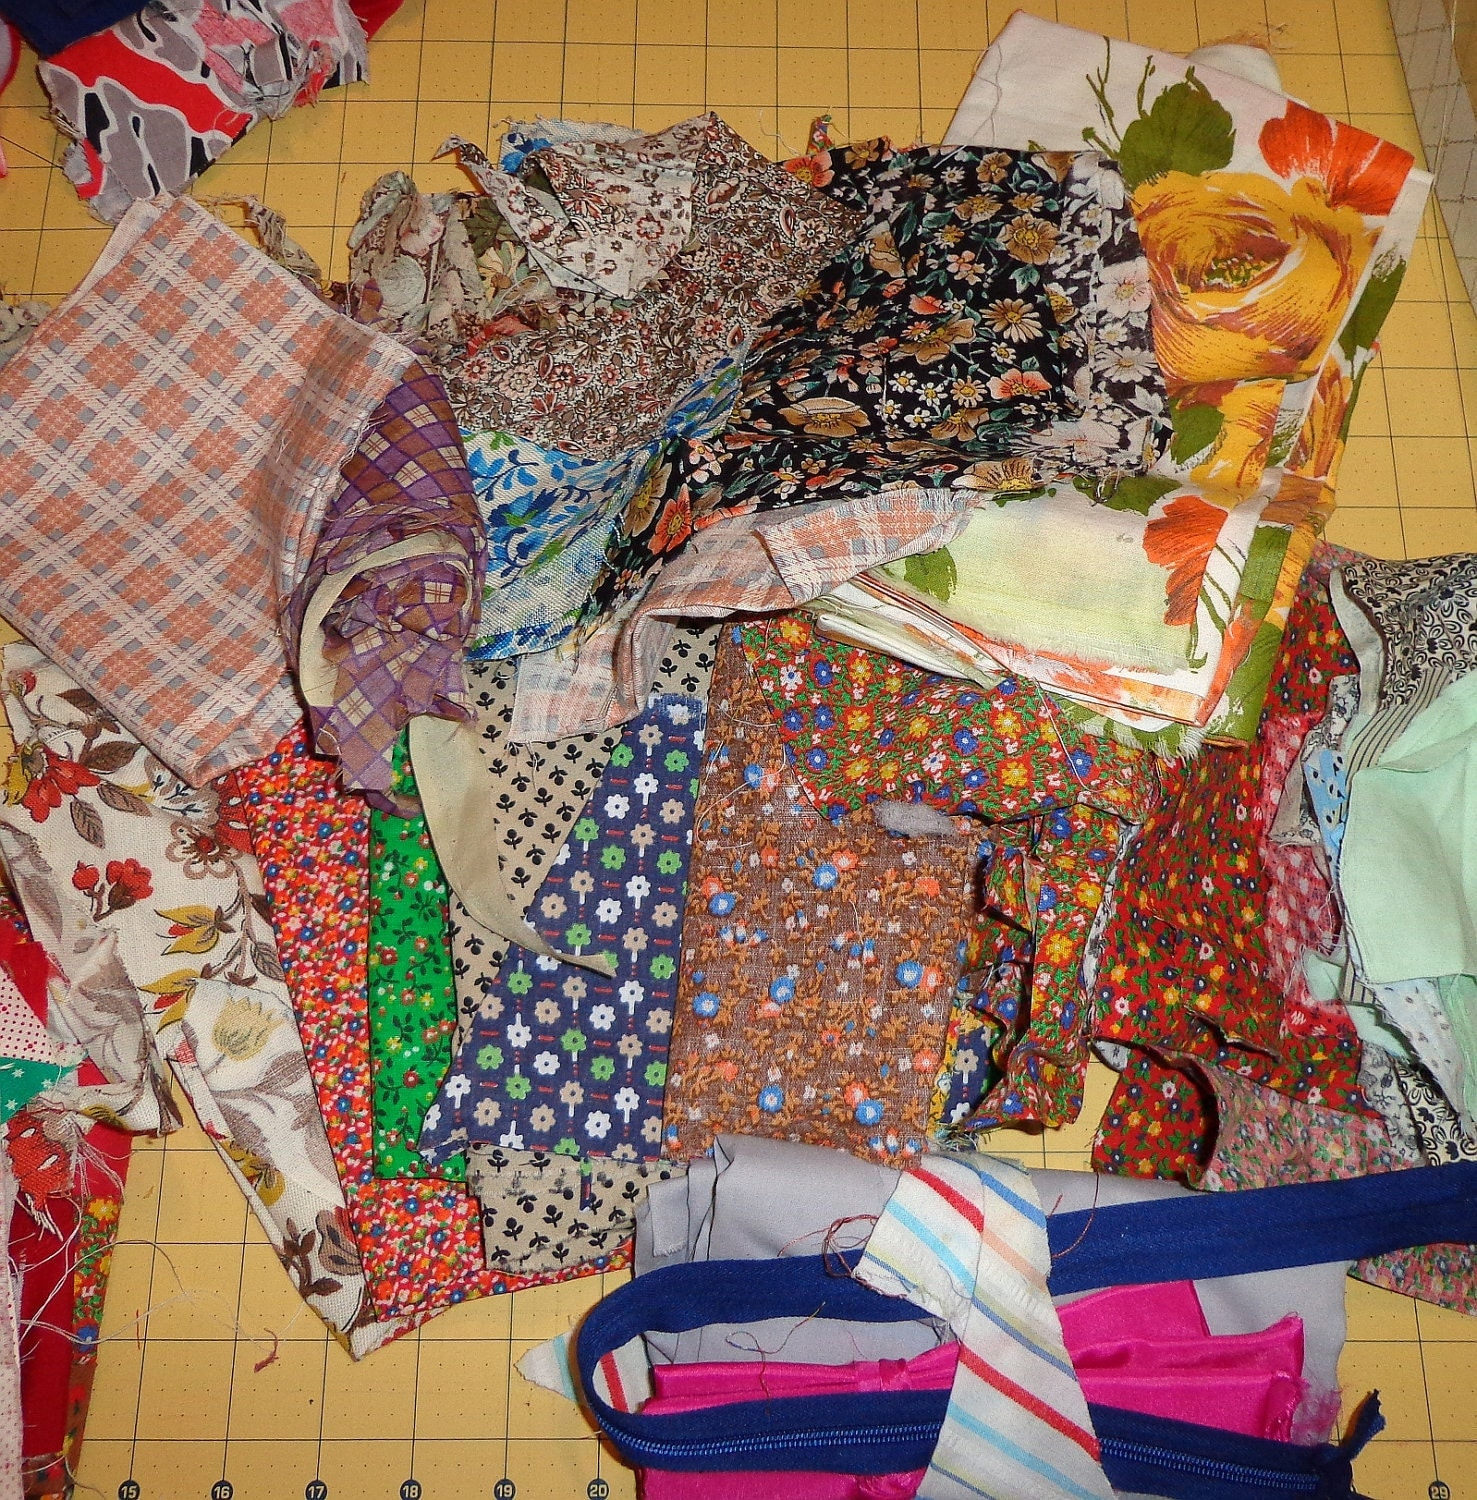 Cotton fabric scraps fabric remnants lot 1 2 pounds by for Fabric remnants